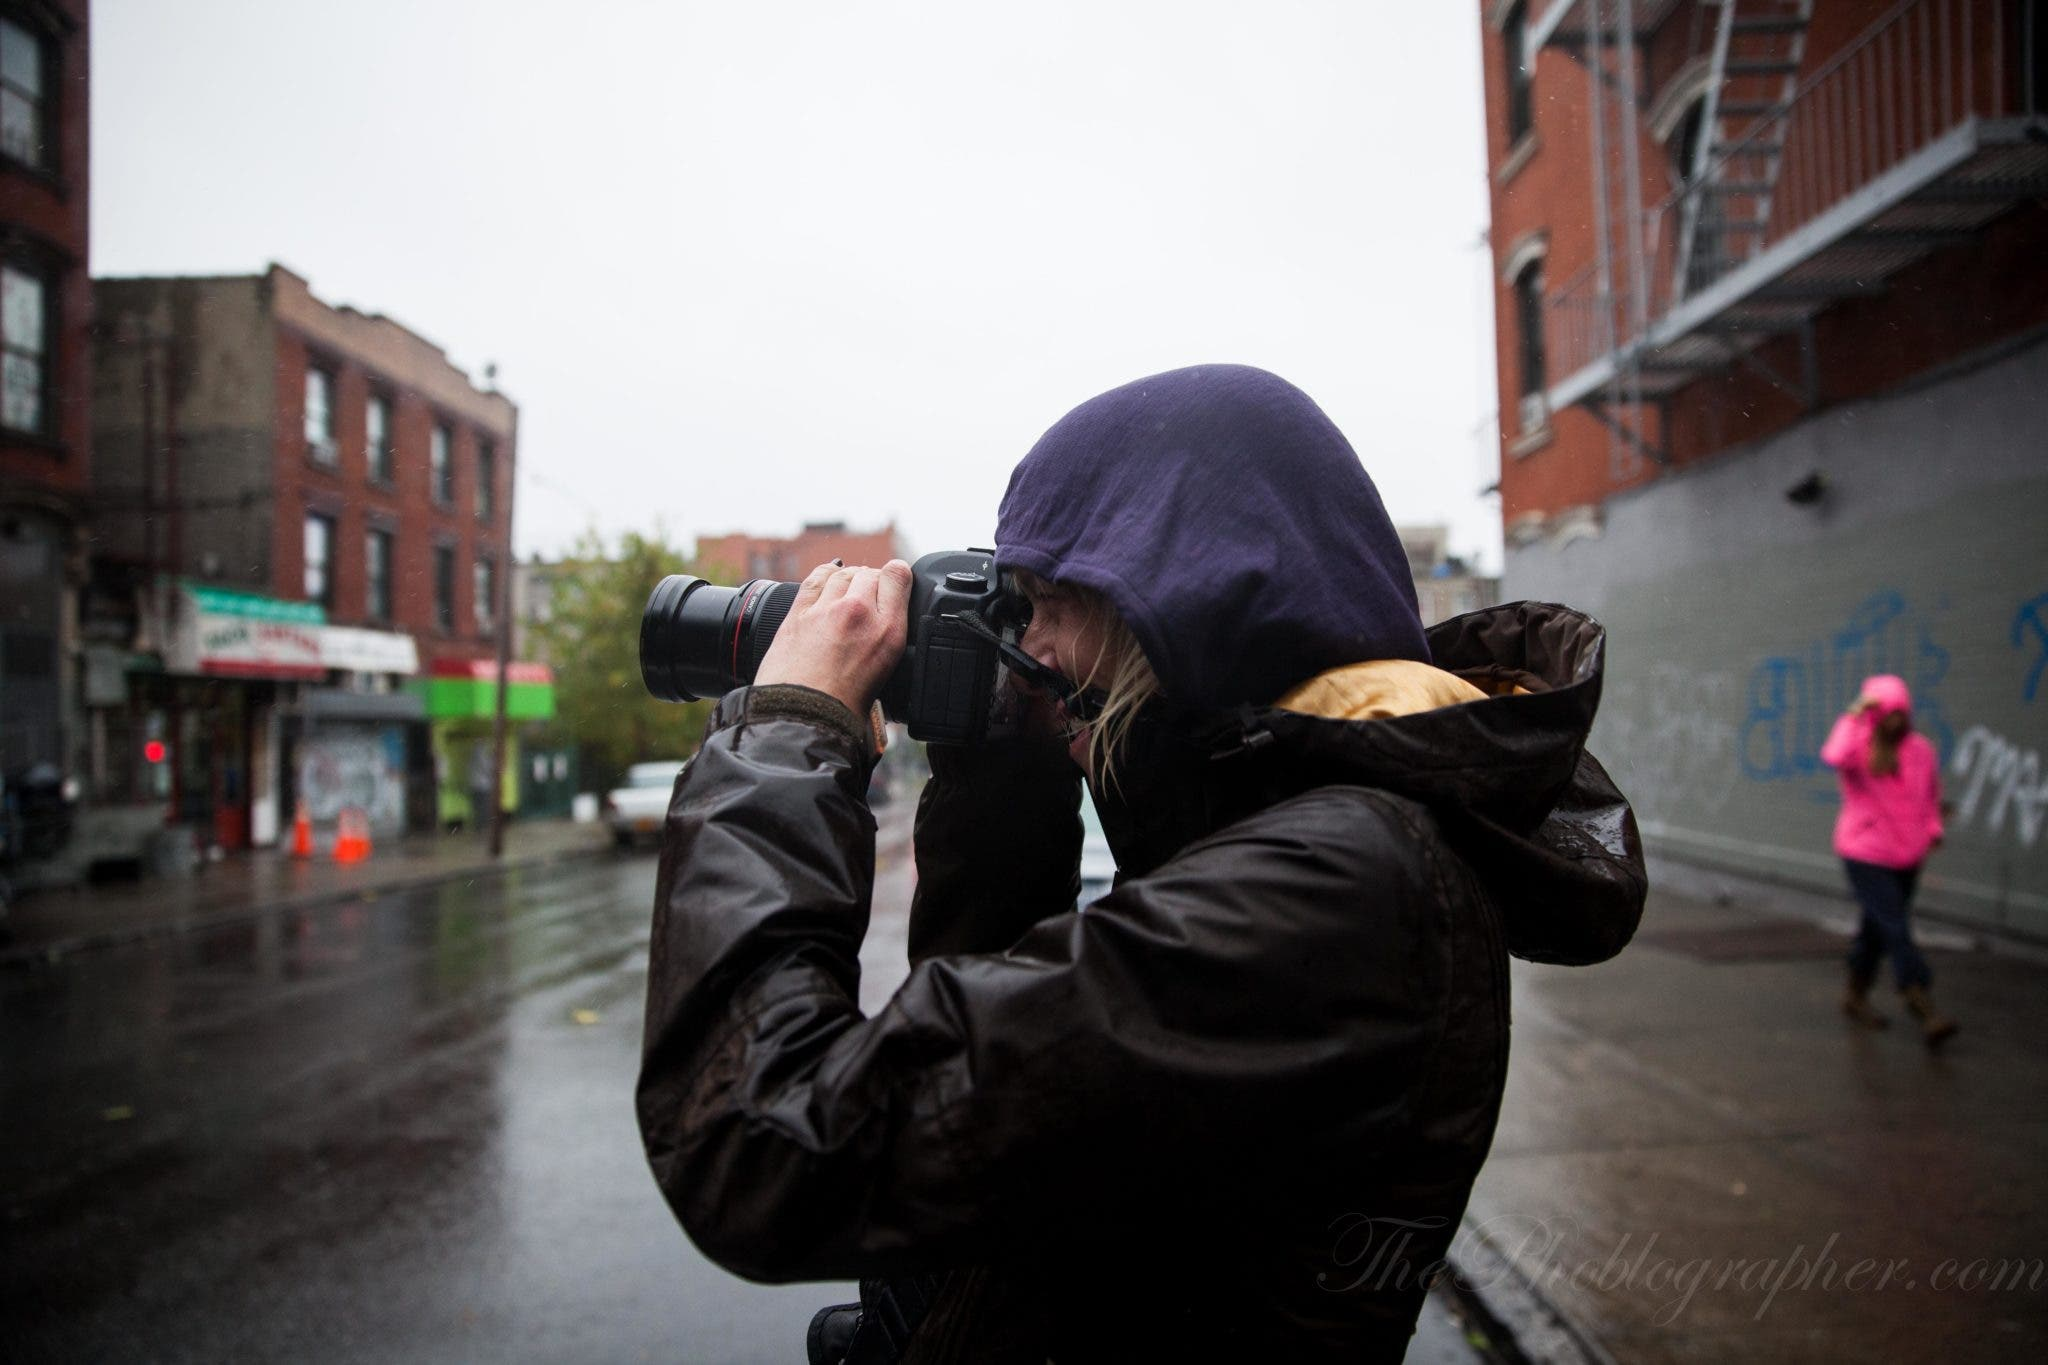 Shooting Hurricane Sandy with the Canon 5D Mk II and 24-70mm f2.8 USM L II